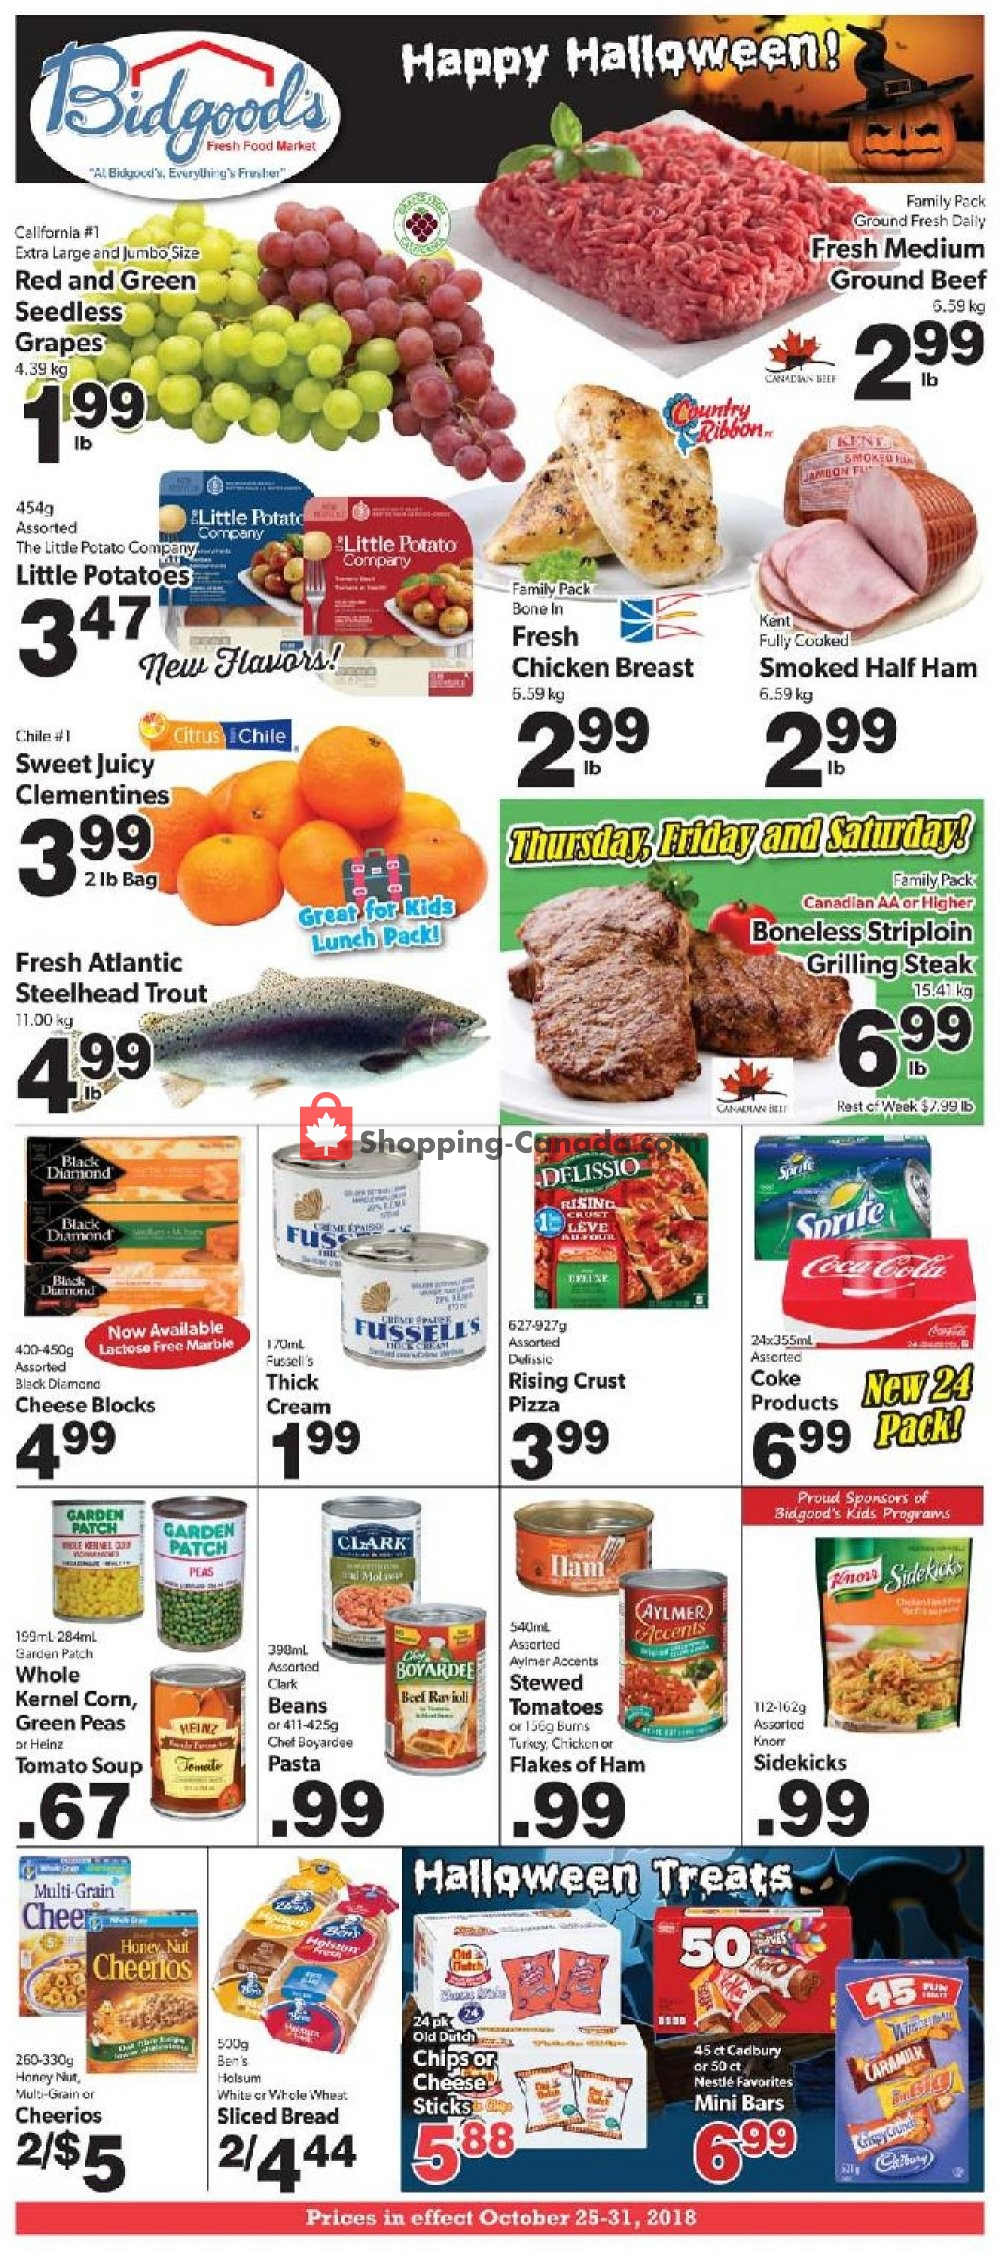 Flyer Bidgood's Supermarket Canada - from Thursday October 25, 2018 to Wednesday October 31, 2018